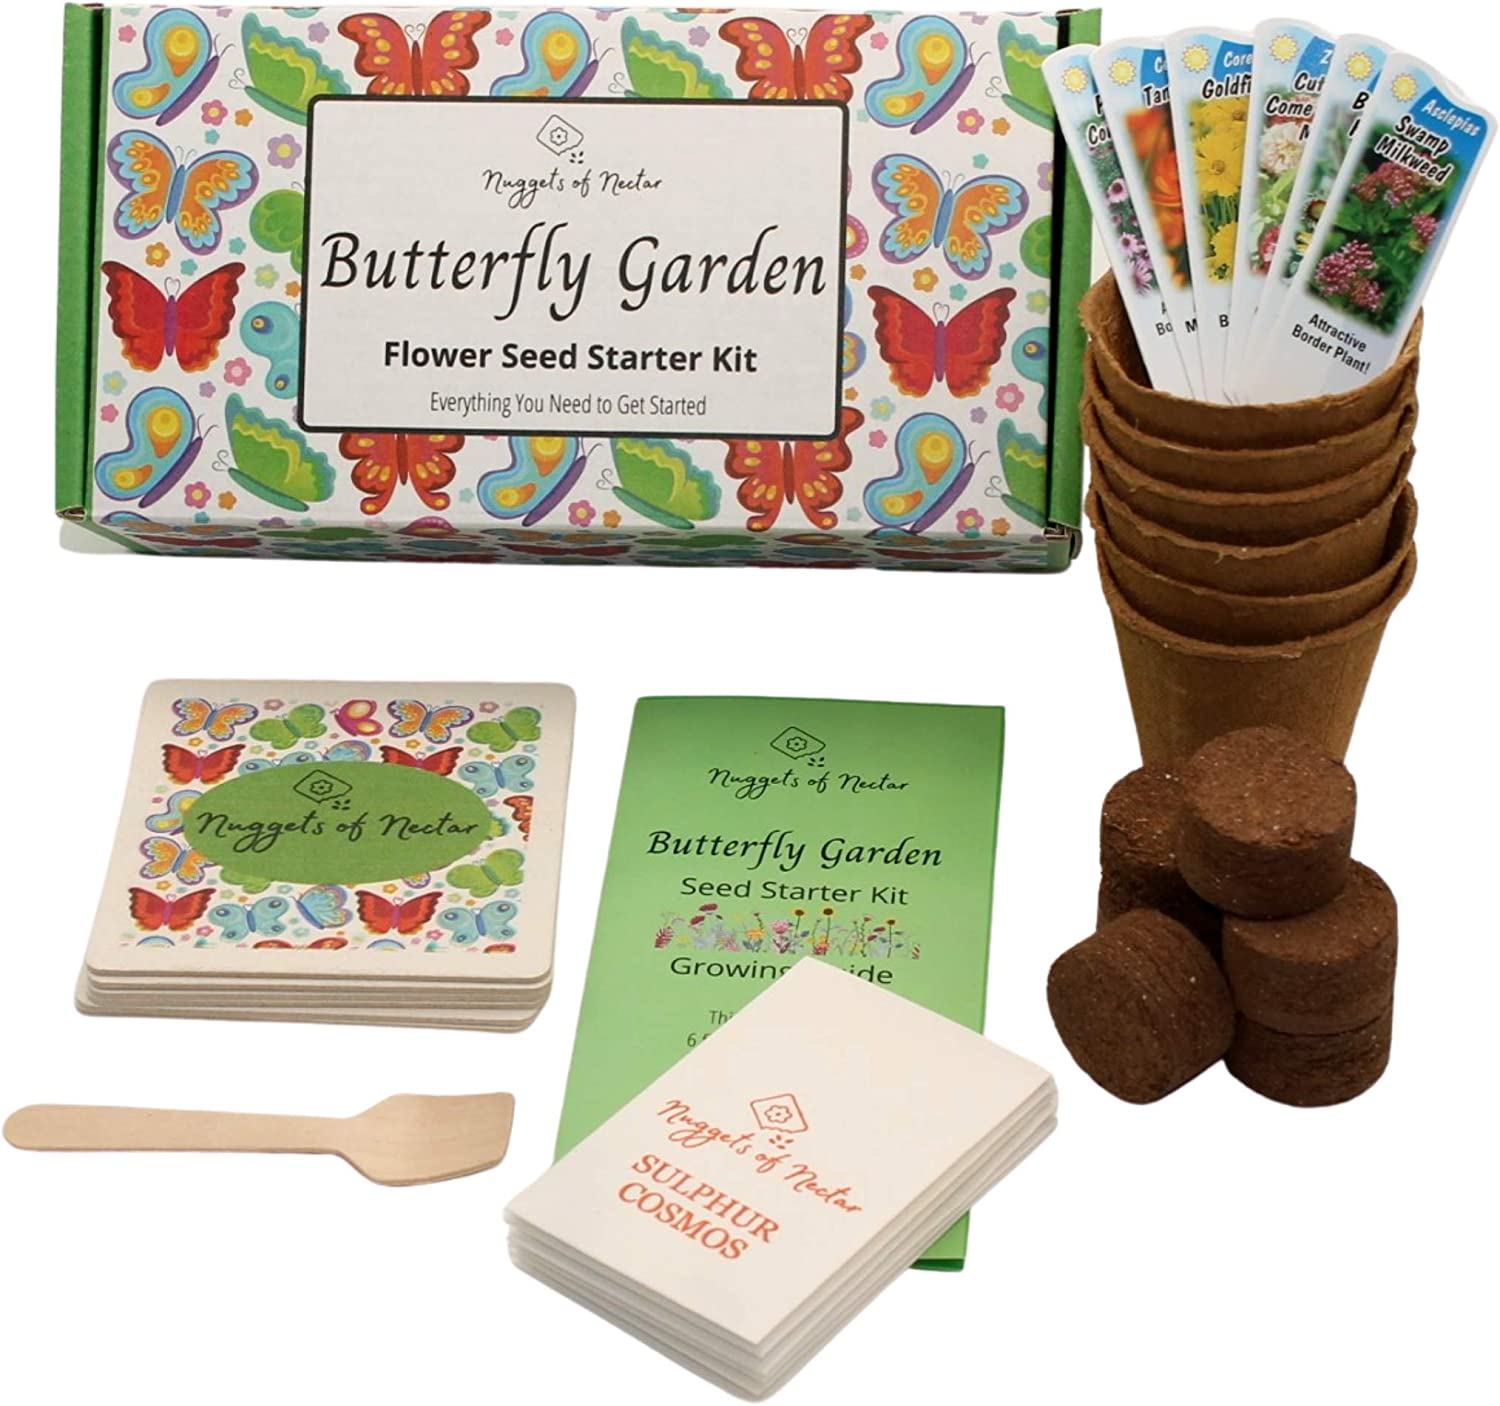 Nuggets of Nectar Butterfly Garden Flower Seed Starter Kit - Grow 6 Types of Wildflower Seeds Including Milkweed, Coreopsis, Cosmos, Echinacea, Gaillardia and Zinnia Seeds